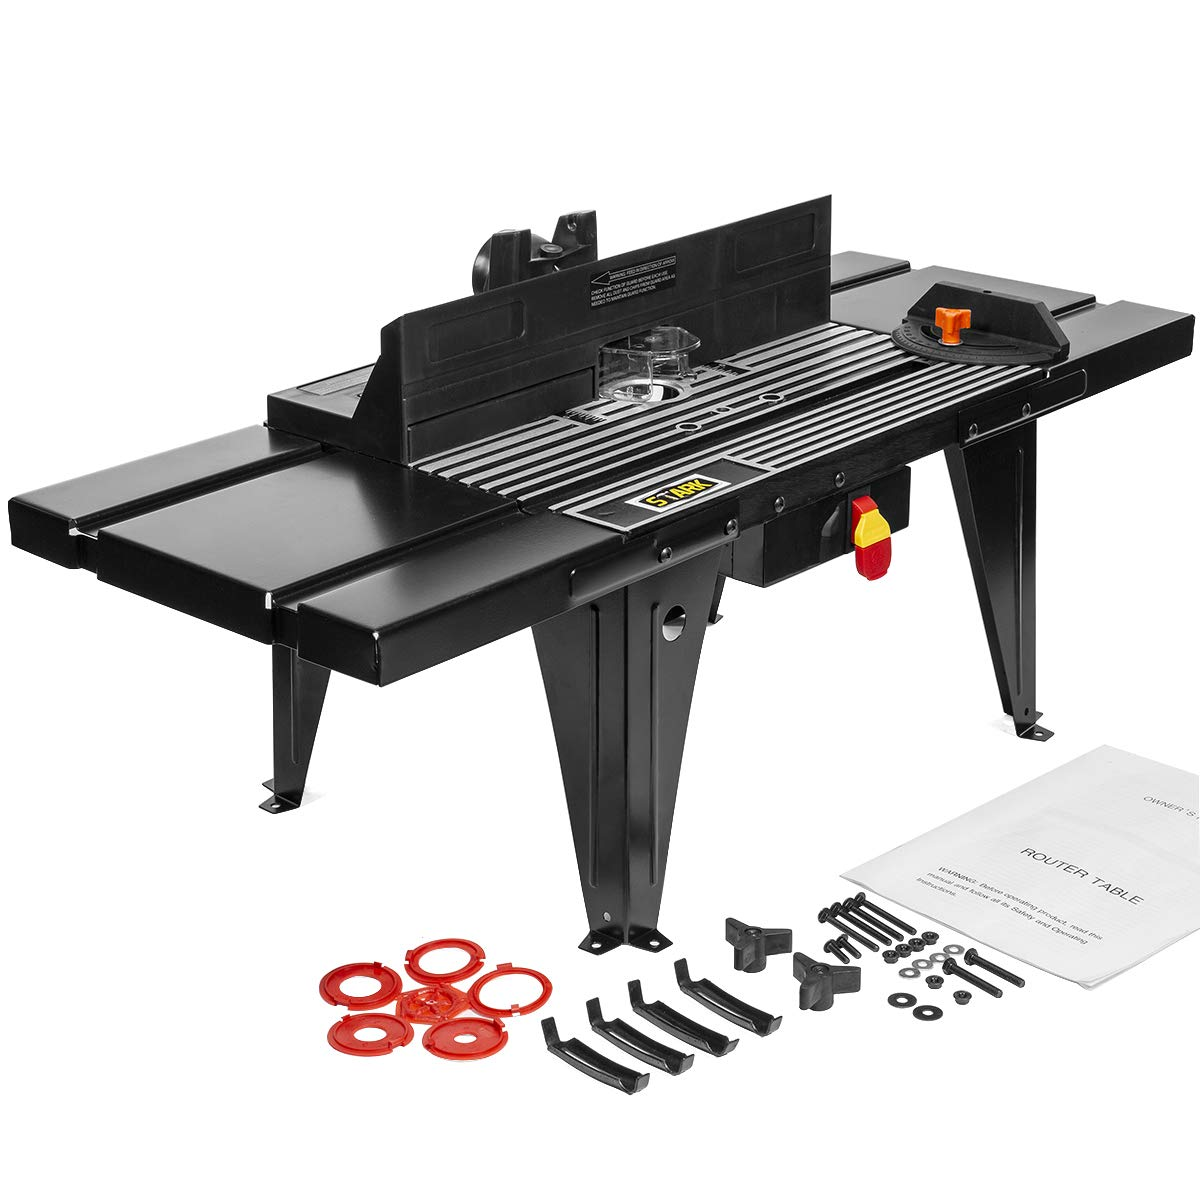 XtremepowerUS Deluxe Bench Top Aluminum Electric Router Table Wood Working On/Off Swtich Craft DIY Benchtop (34'' x 13'') -Black by XtremepowerUS